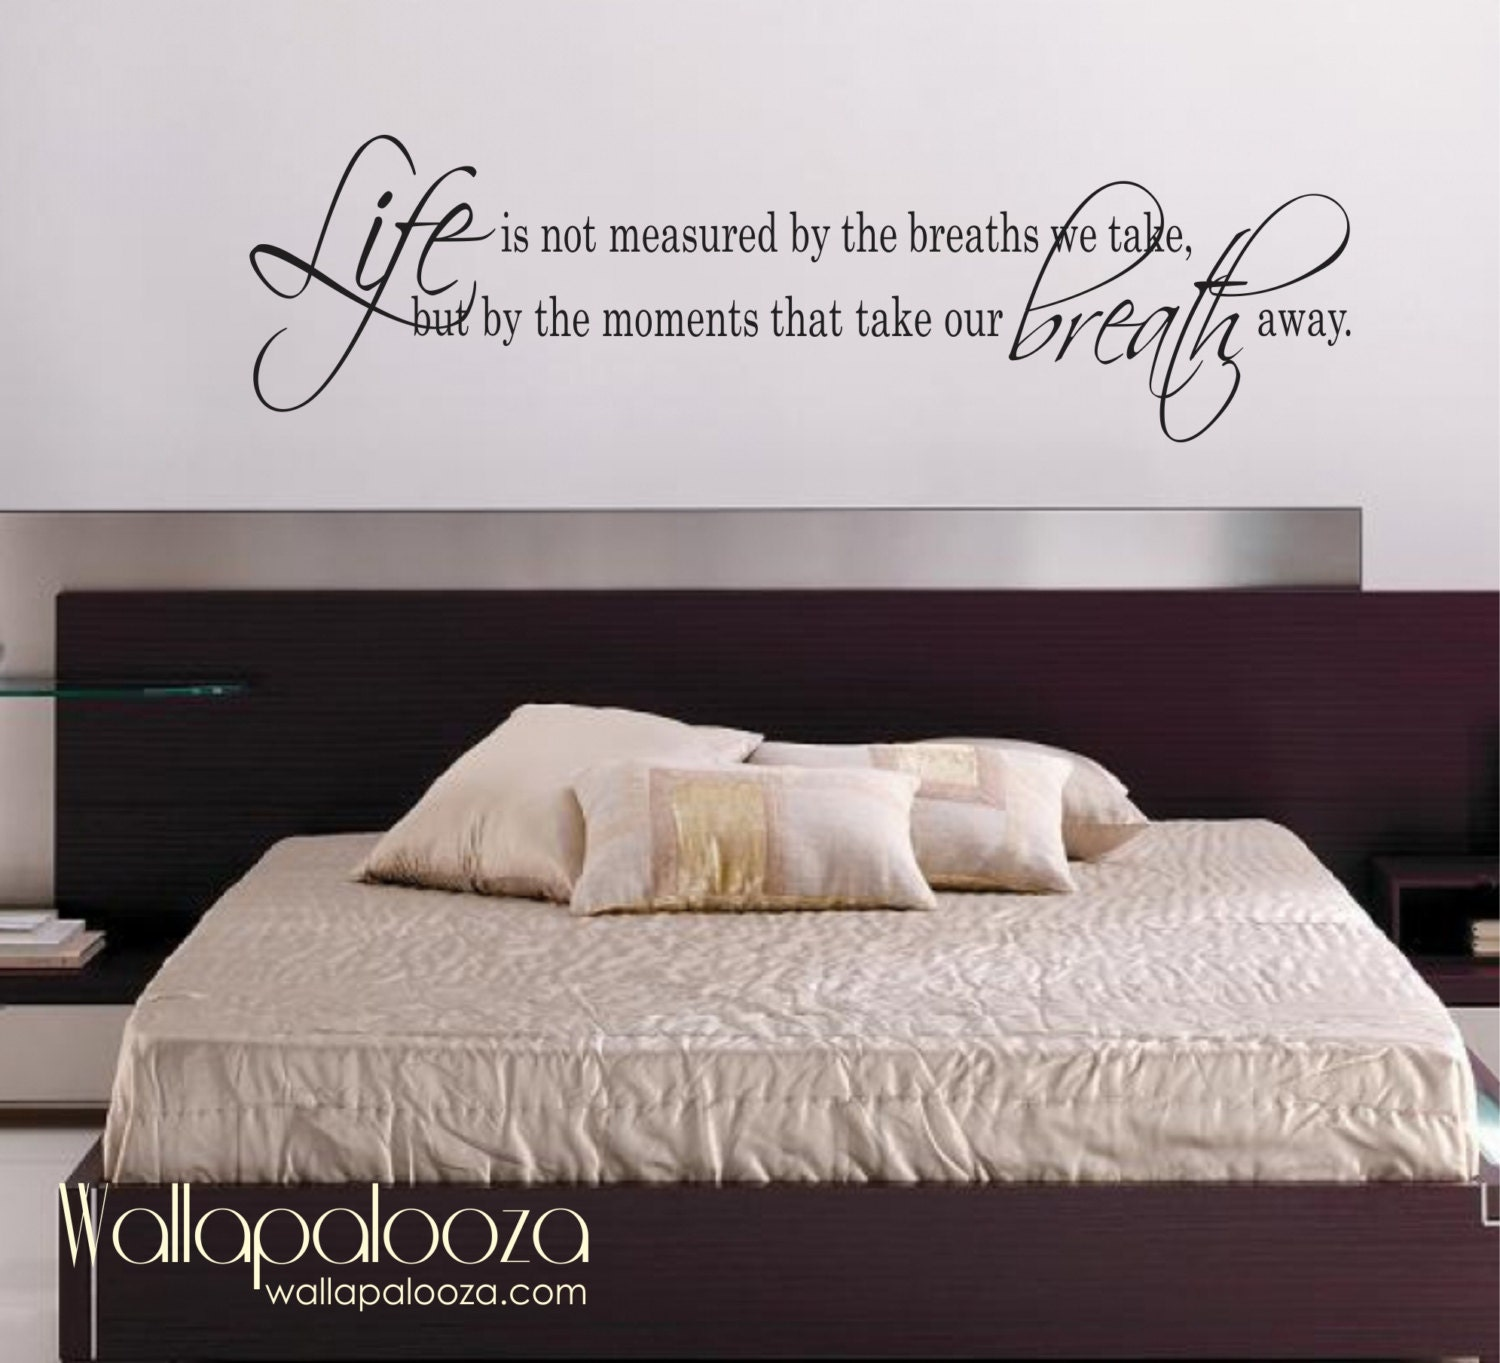 Life is not measured wall decal love wall decal bedroom zoom amipublicfo Image collections